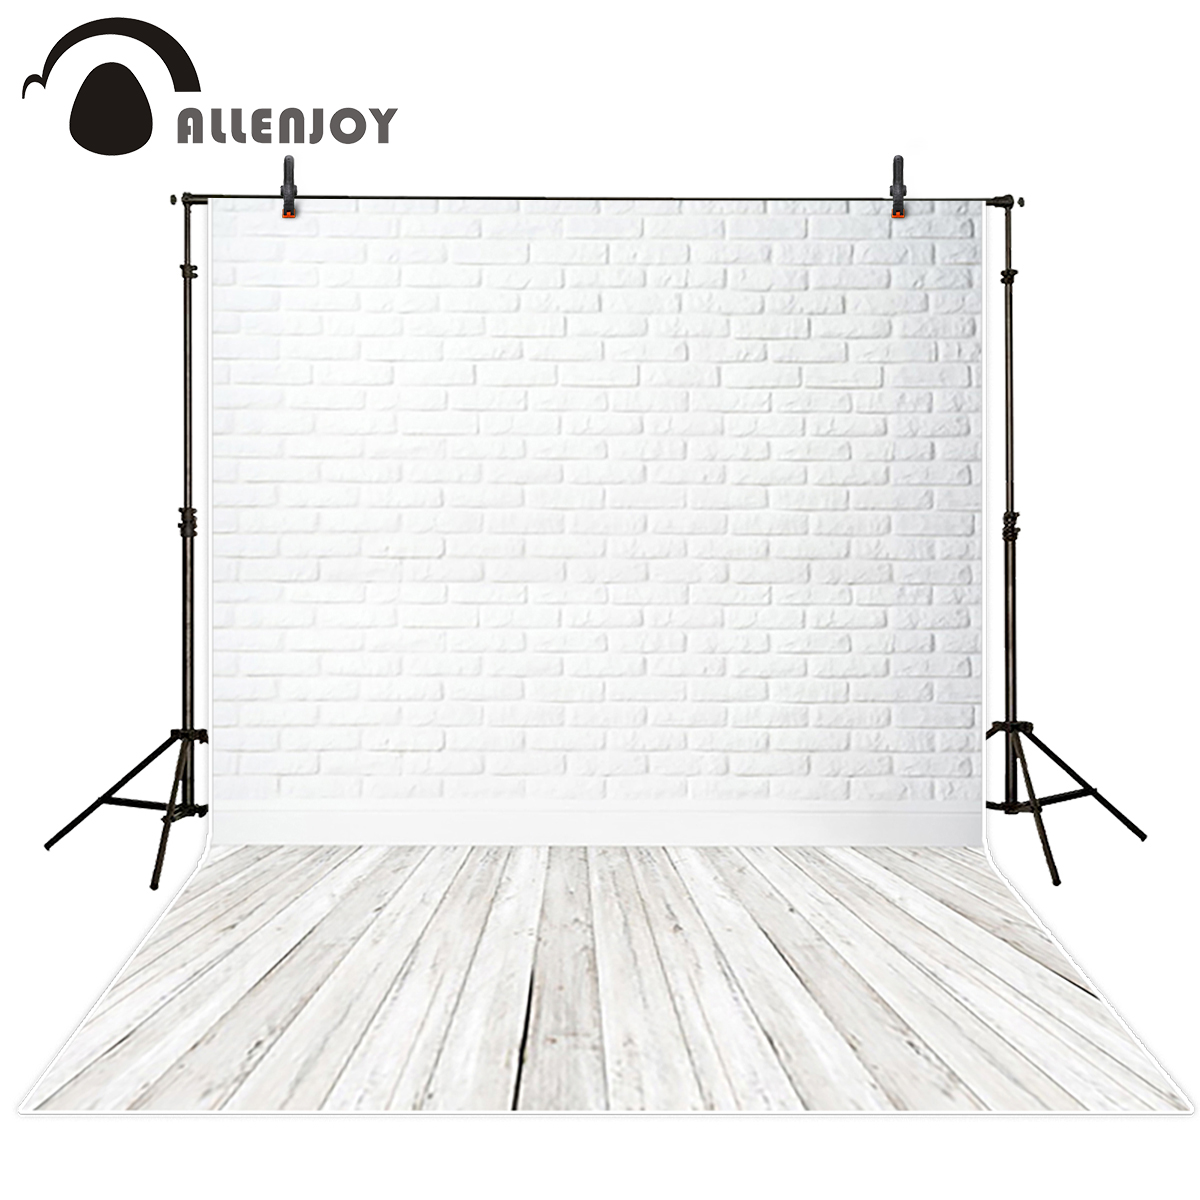 Allenjoy wall paper Photo background white painted closed brick wall closed wooden floor Background for photo backdrop fabric спицы круговые алюминиевые с покрытием 80см 2 0мм 940120 940102